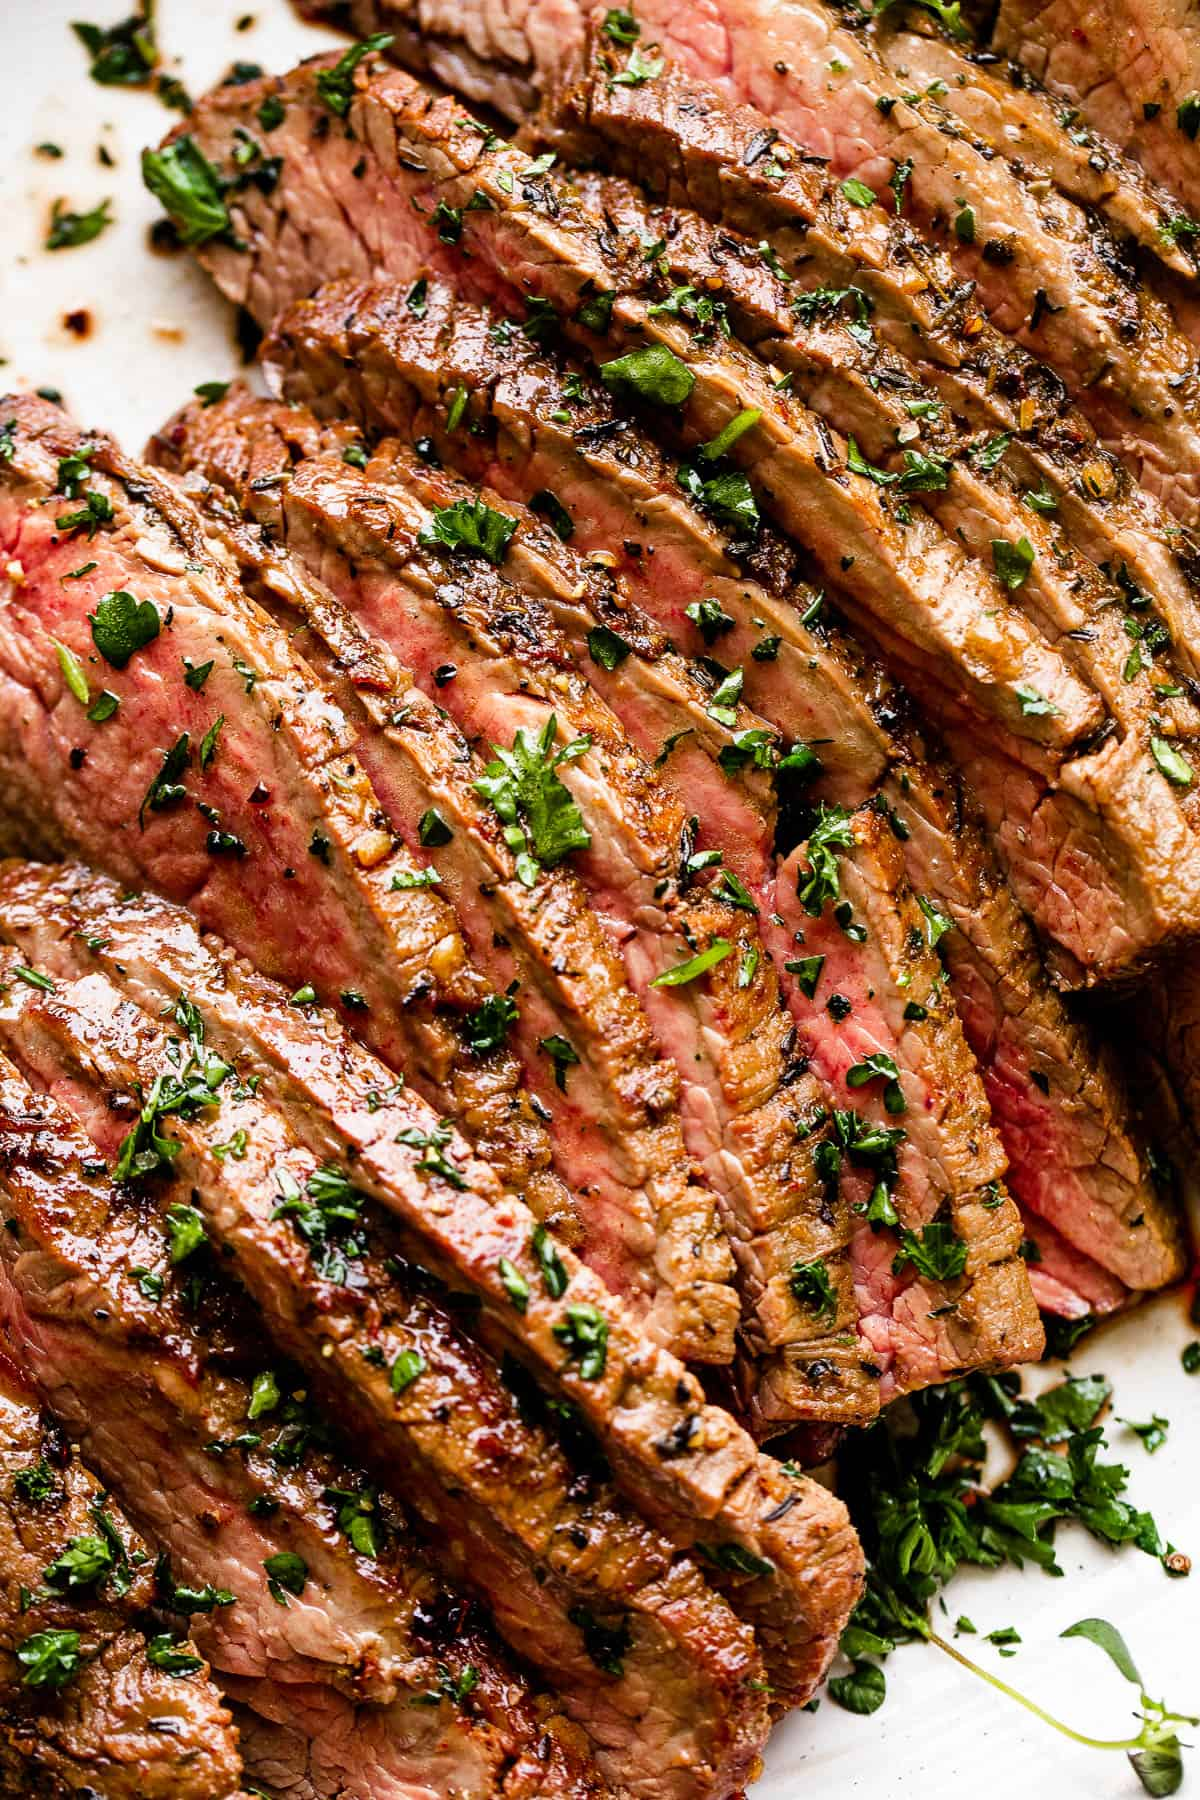 sliced london broil garnished with parsley